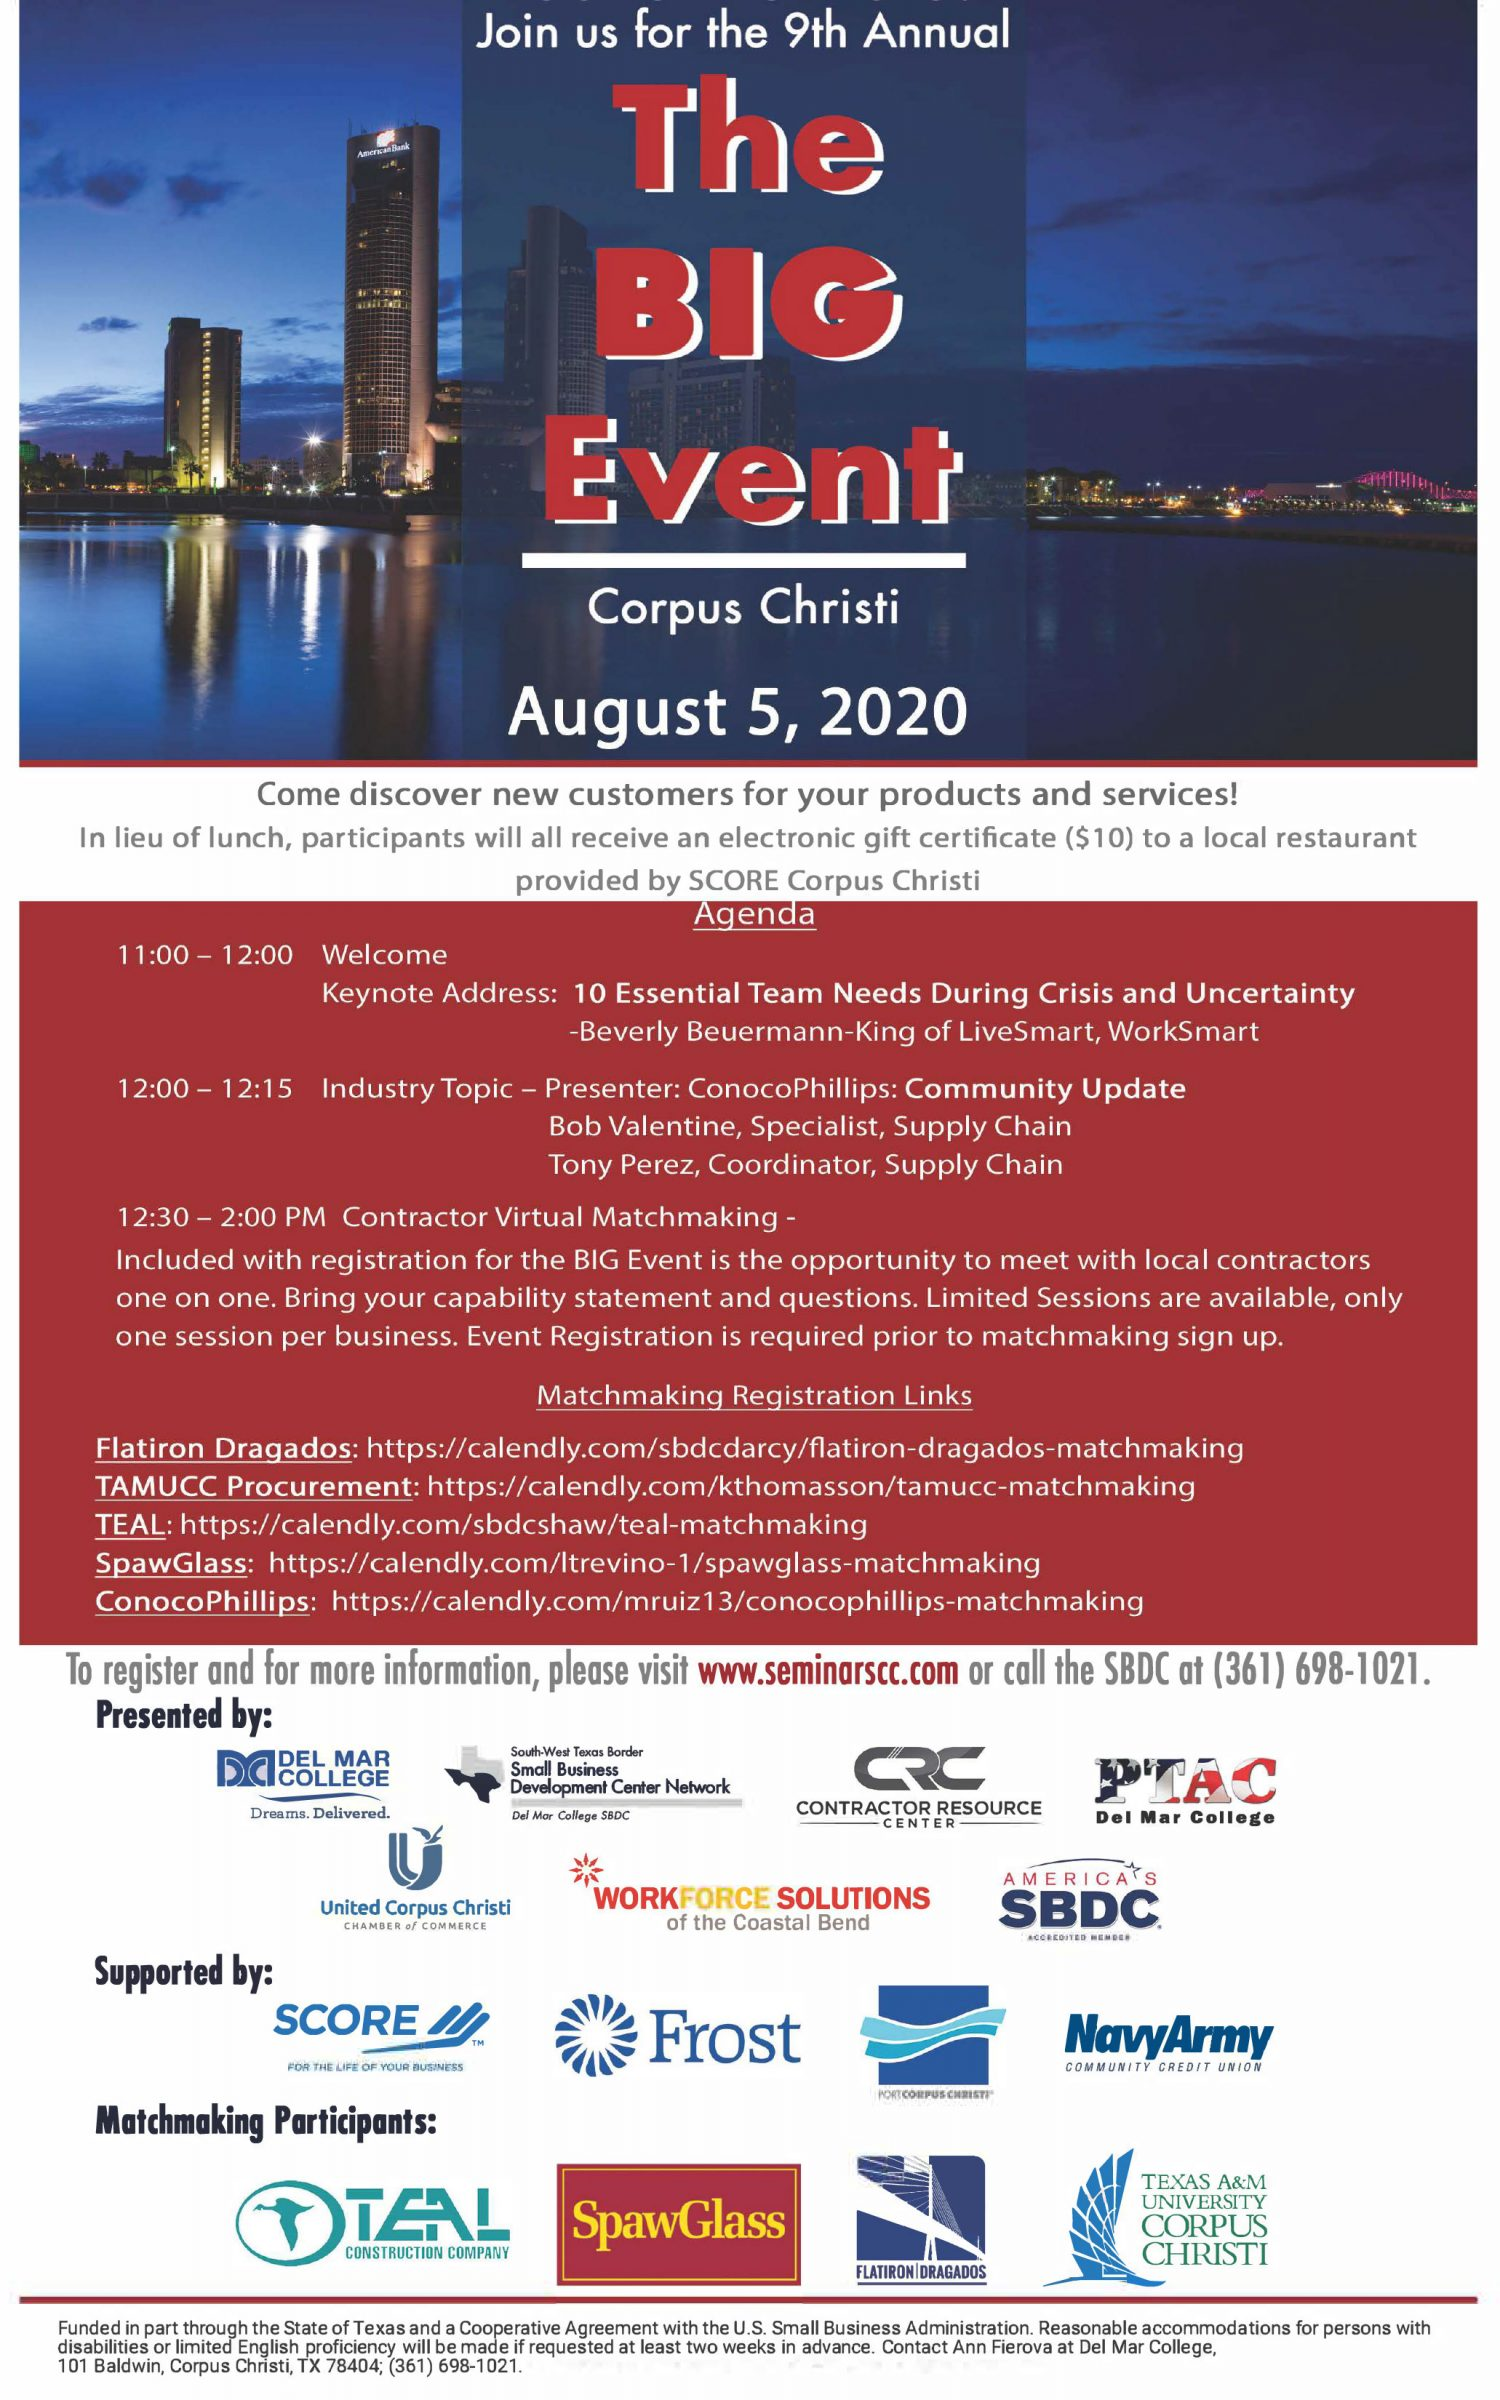 Register for the Big Event on August 5, 2020